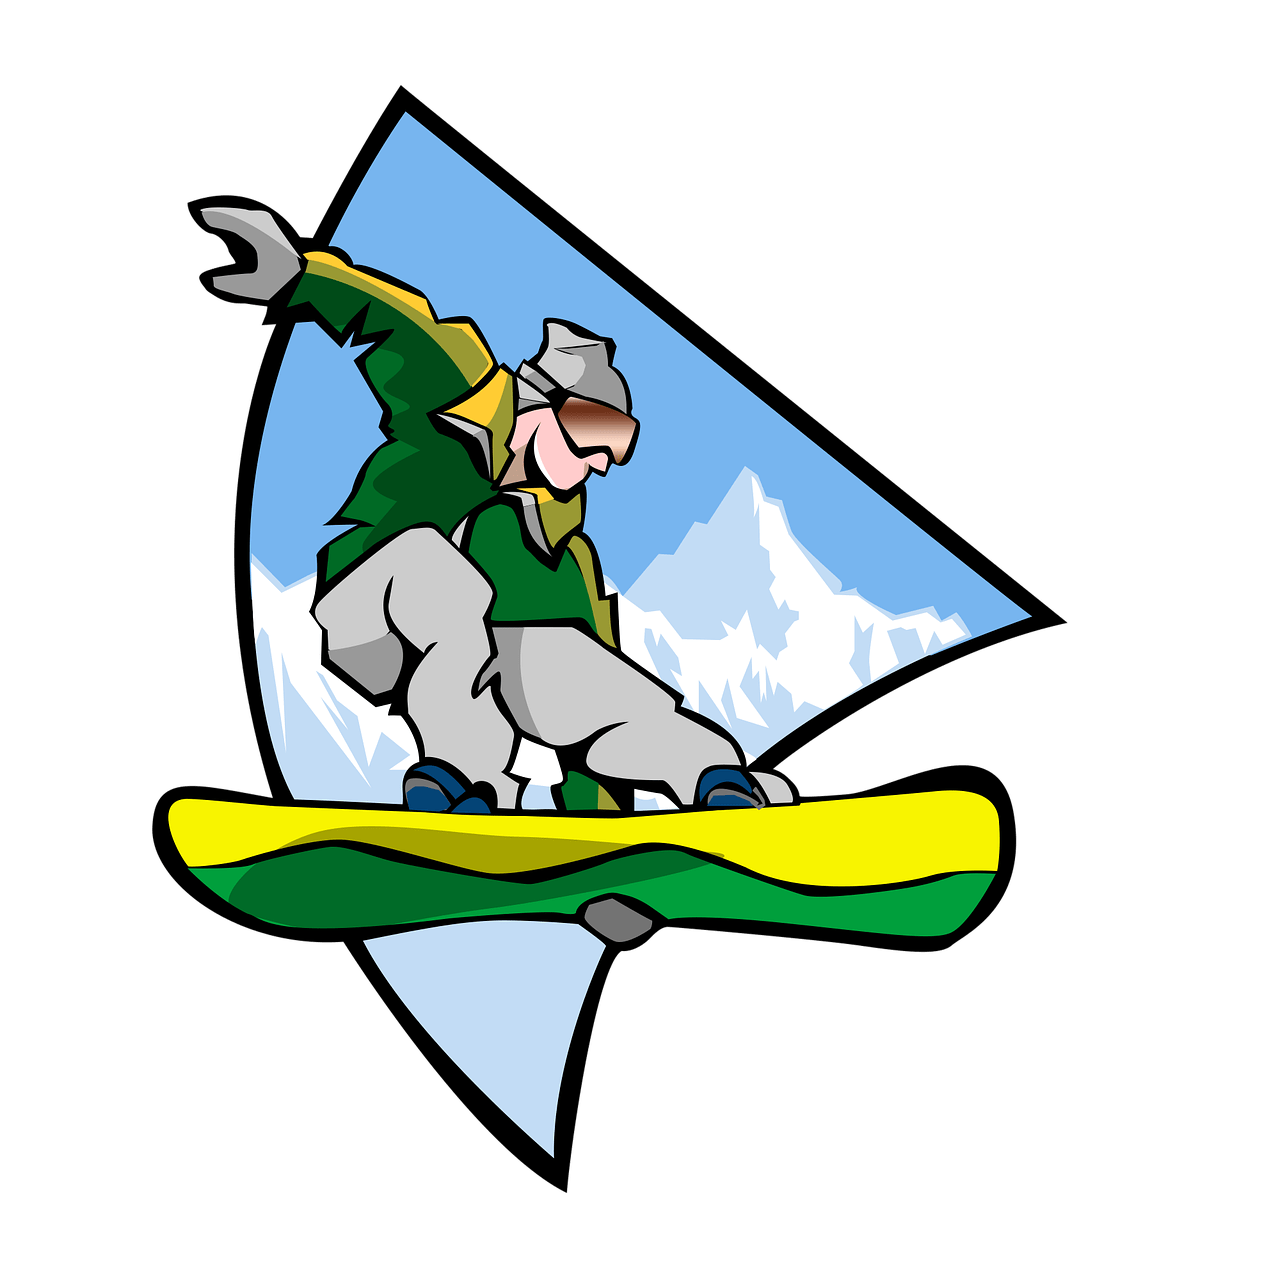 snowboarders clipart sport